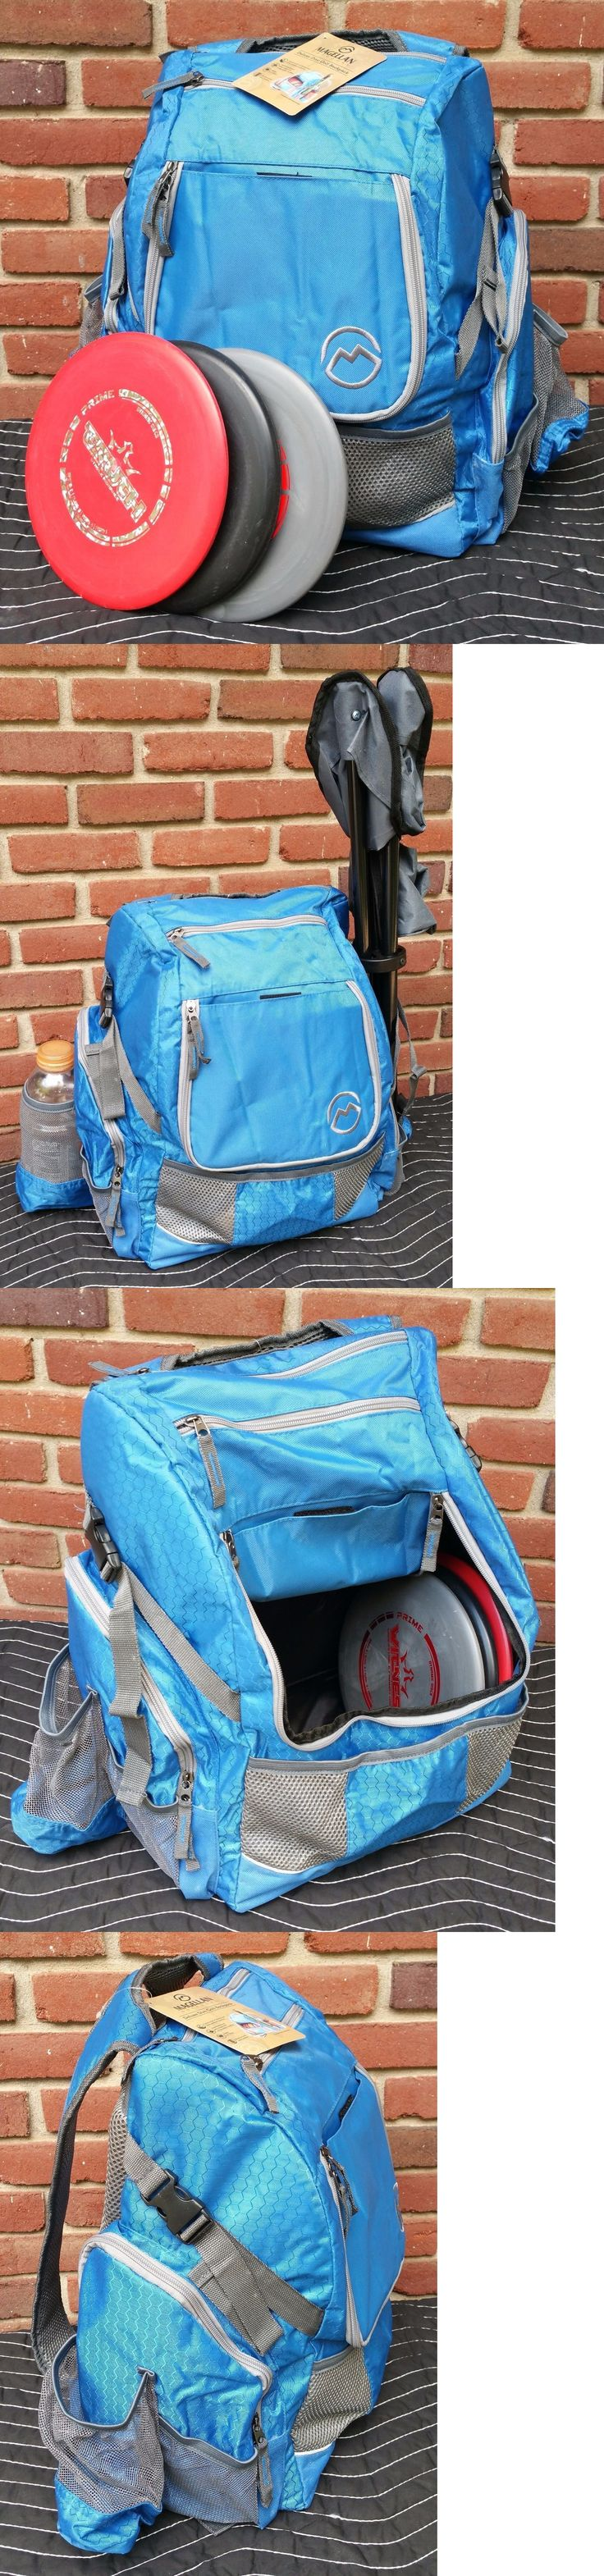 Disc Golf 20851: New Blue Disc Golf Backpack Holds 21+ Discs Deluxe Frisbee Bag Ultimate Tote -> BUY IT NOW ONLY: $40.85 on eBay!